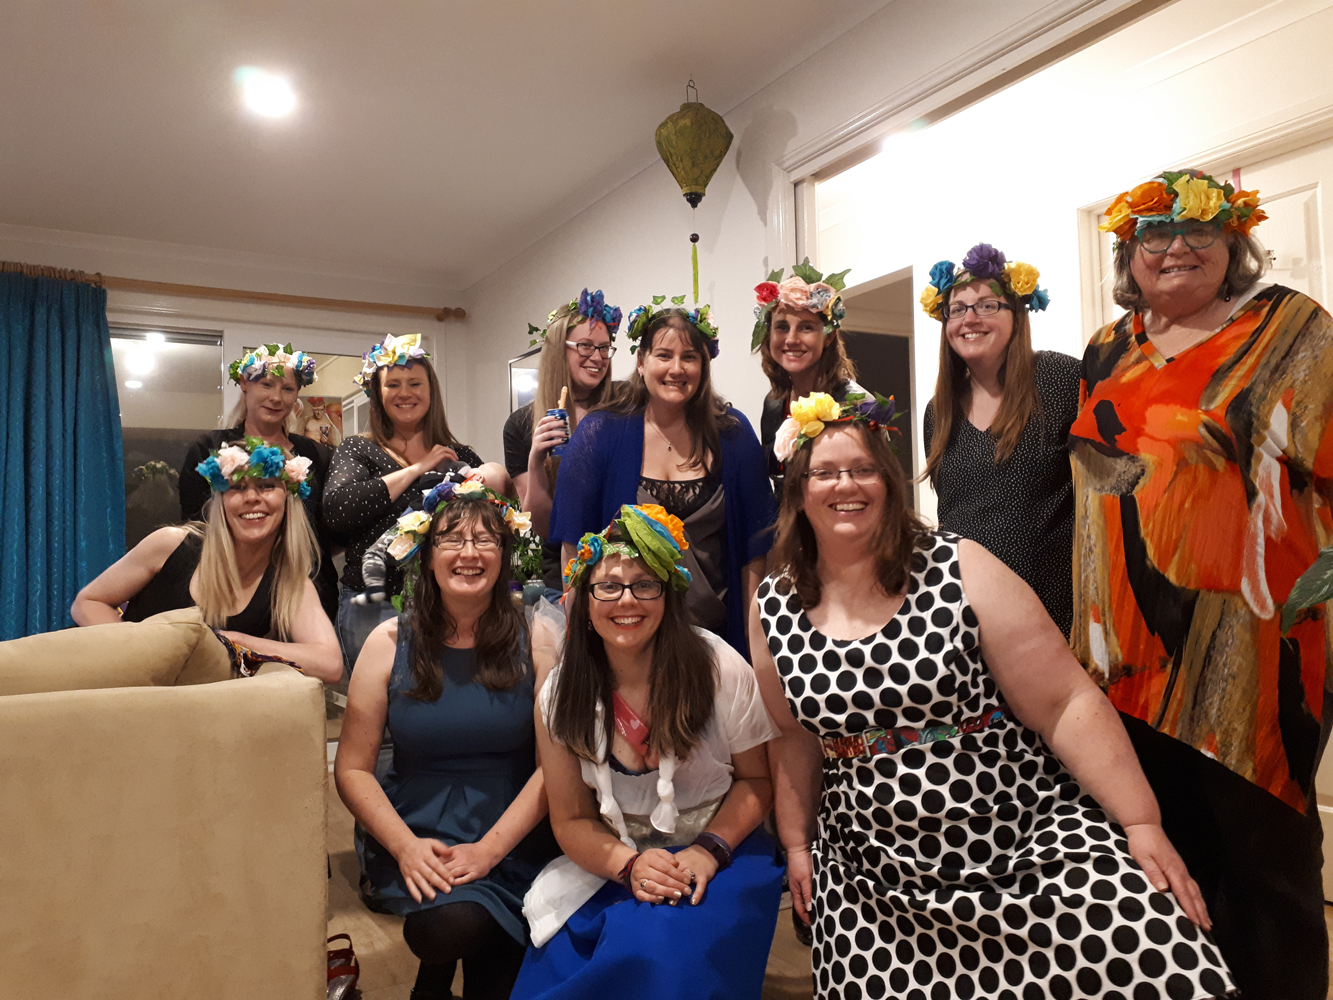 A Crafty Hens Party